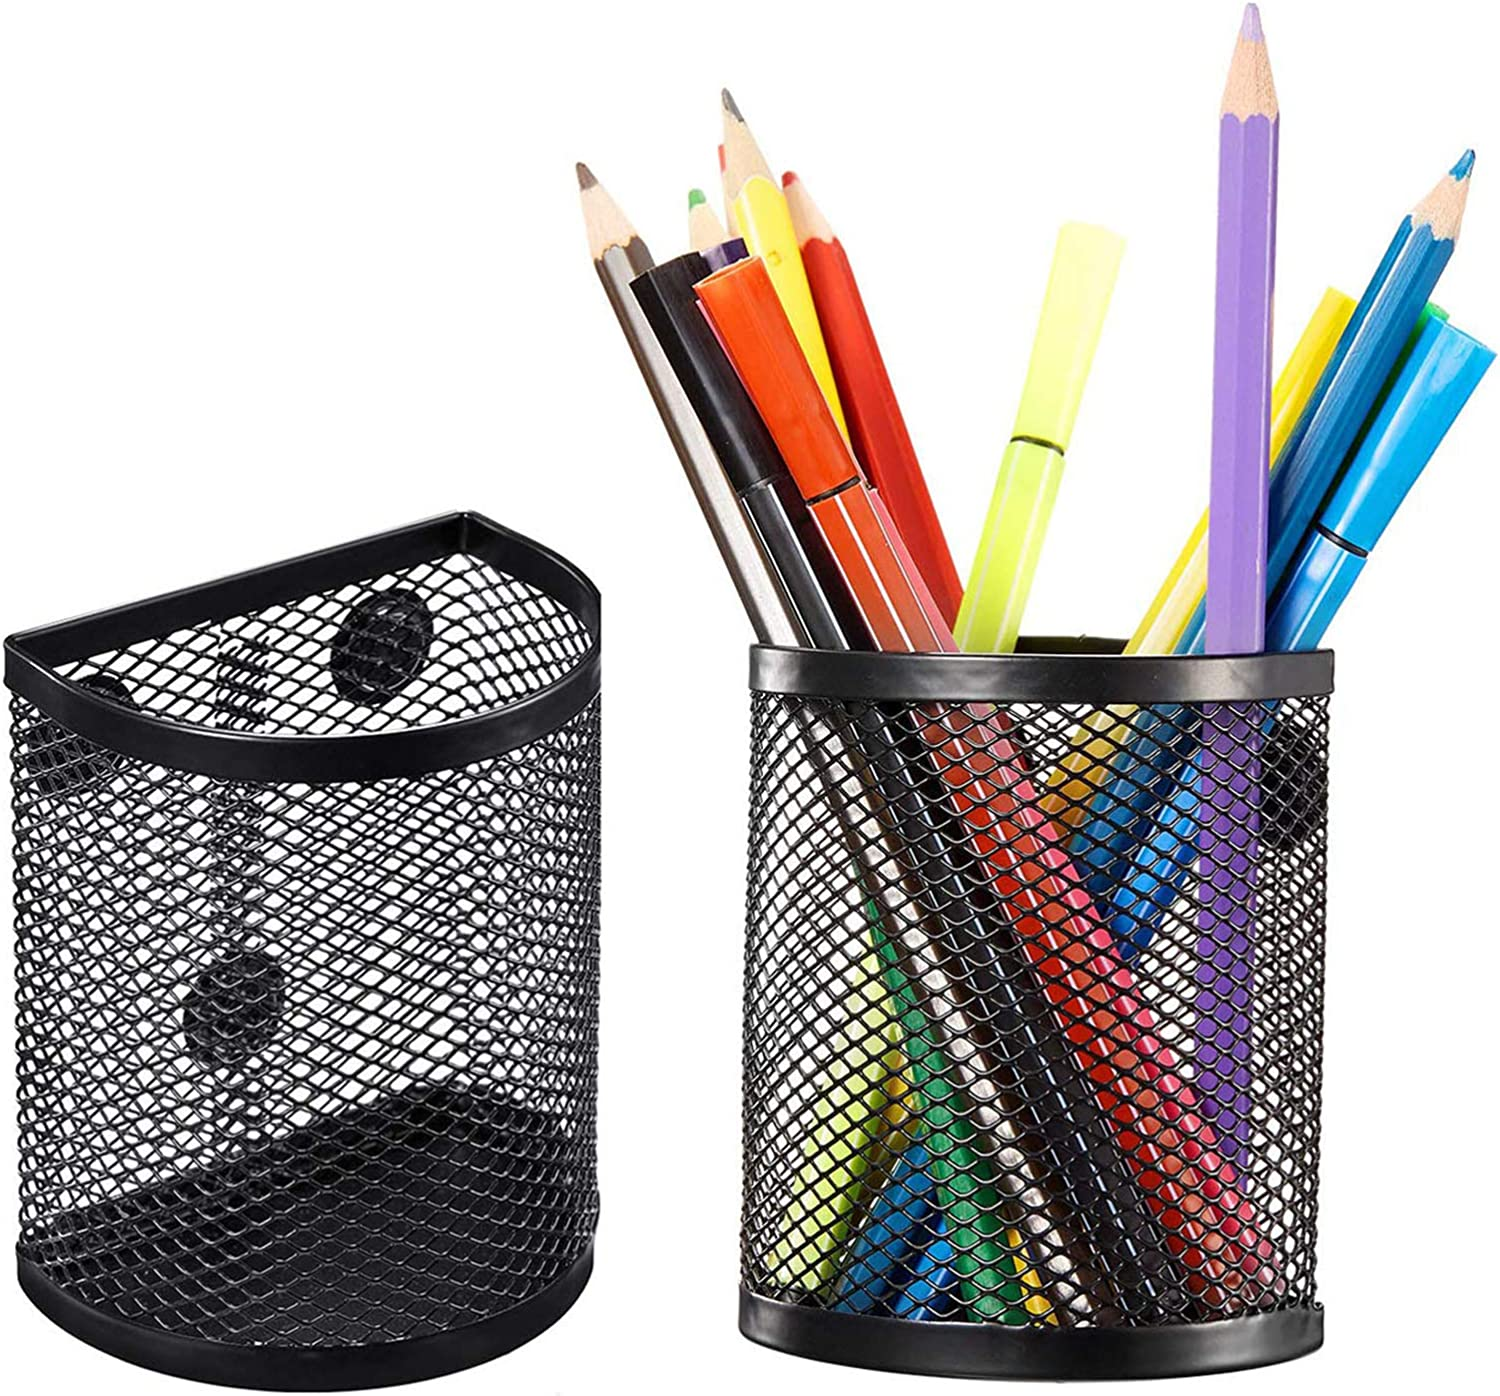 Magnetic Pencil Sale Special Price Holder Mesh Storage Contai Baskets Metal Beauty products